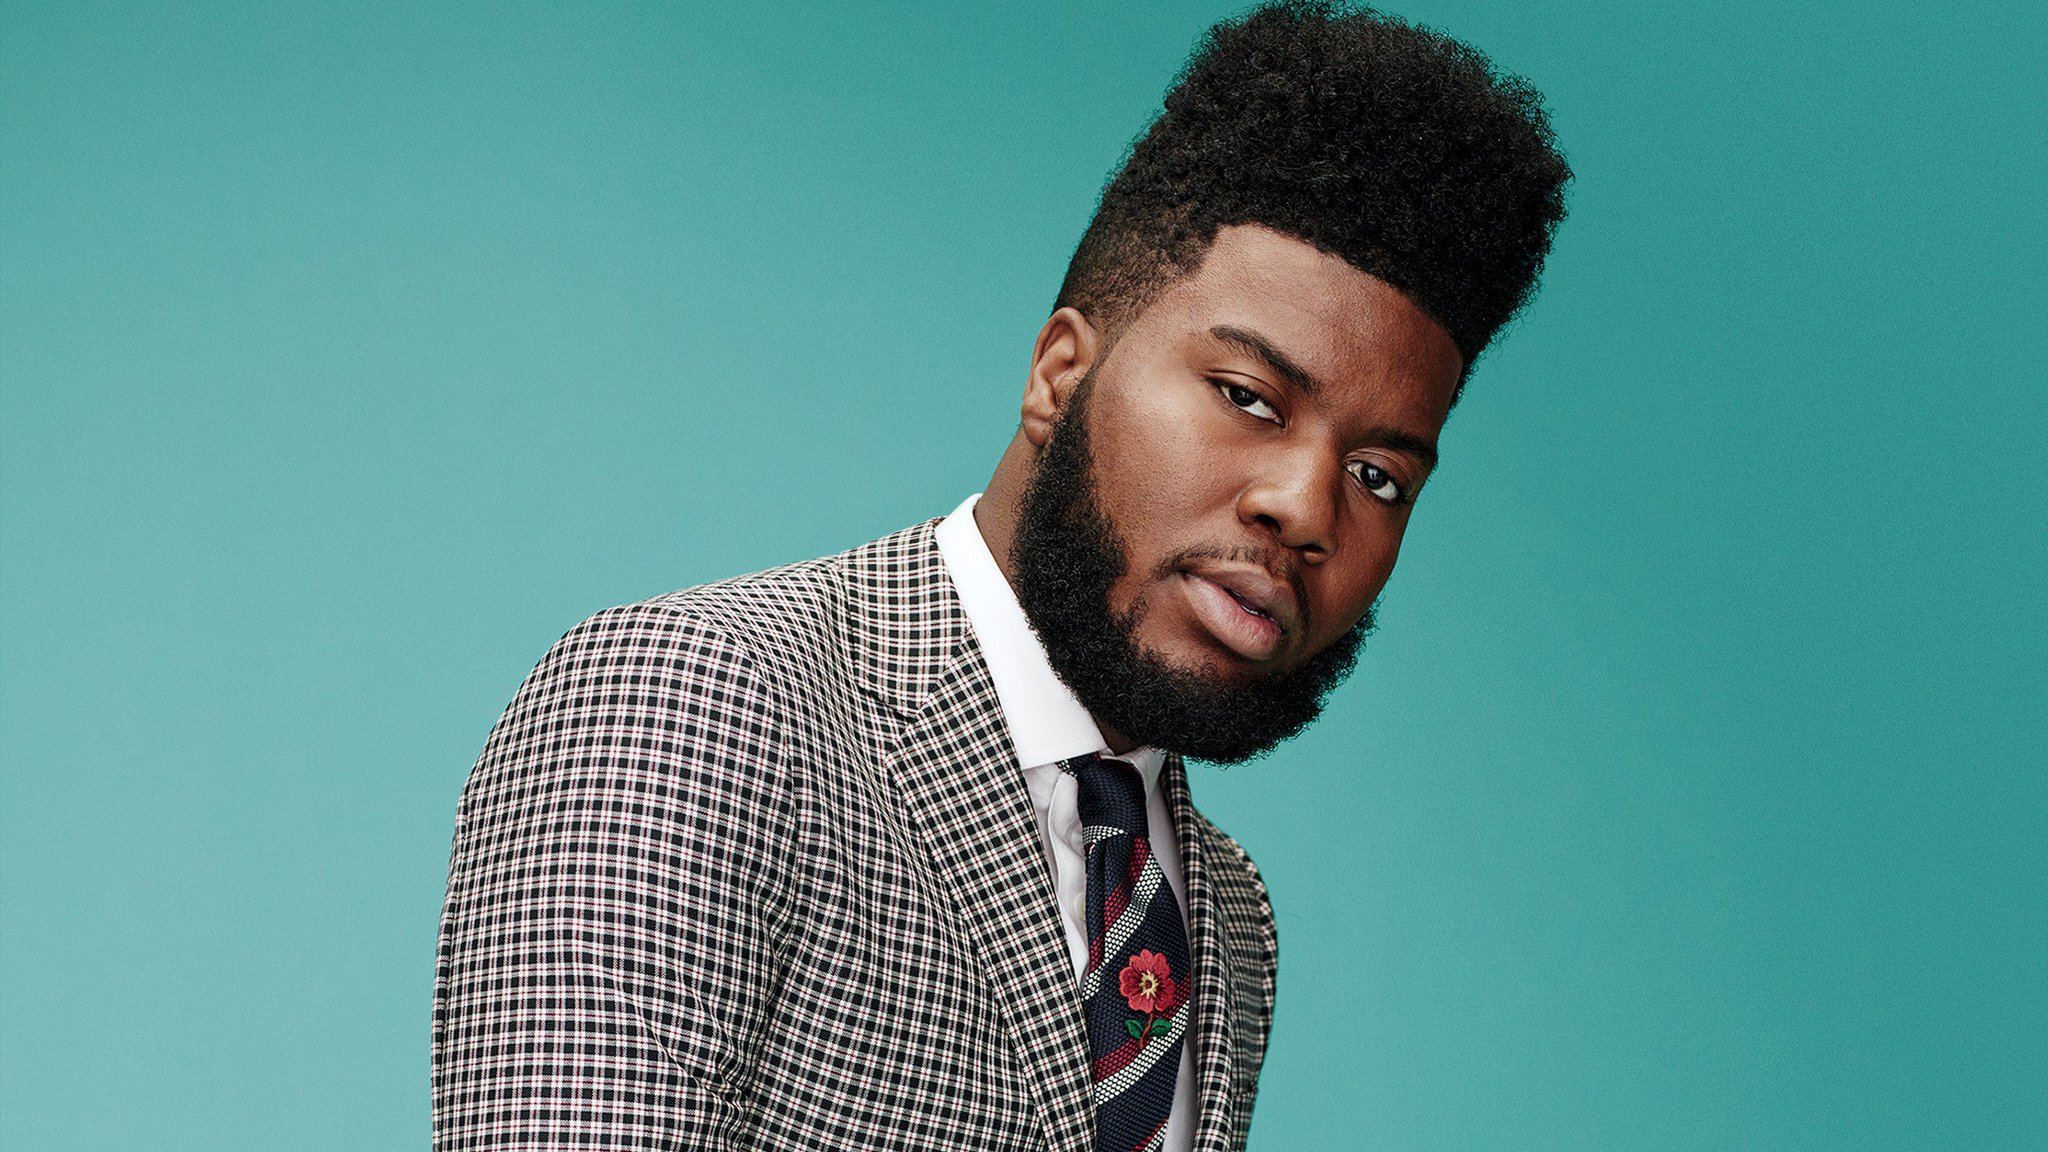 The confidence and comfort of pop's newest big thing, @thegreatkhalid https://t.co/XCnxRvl7DA https://t.co/esZ8E3Qt6k